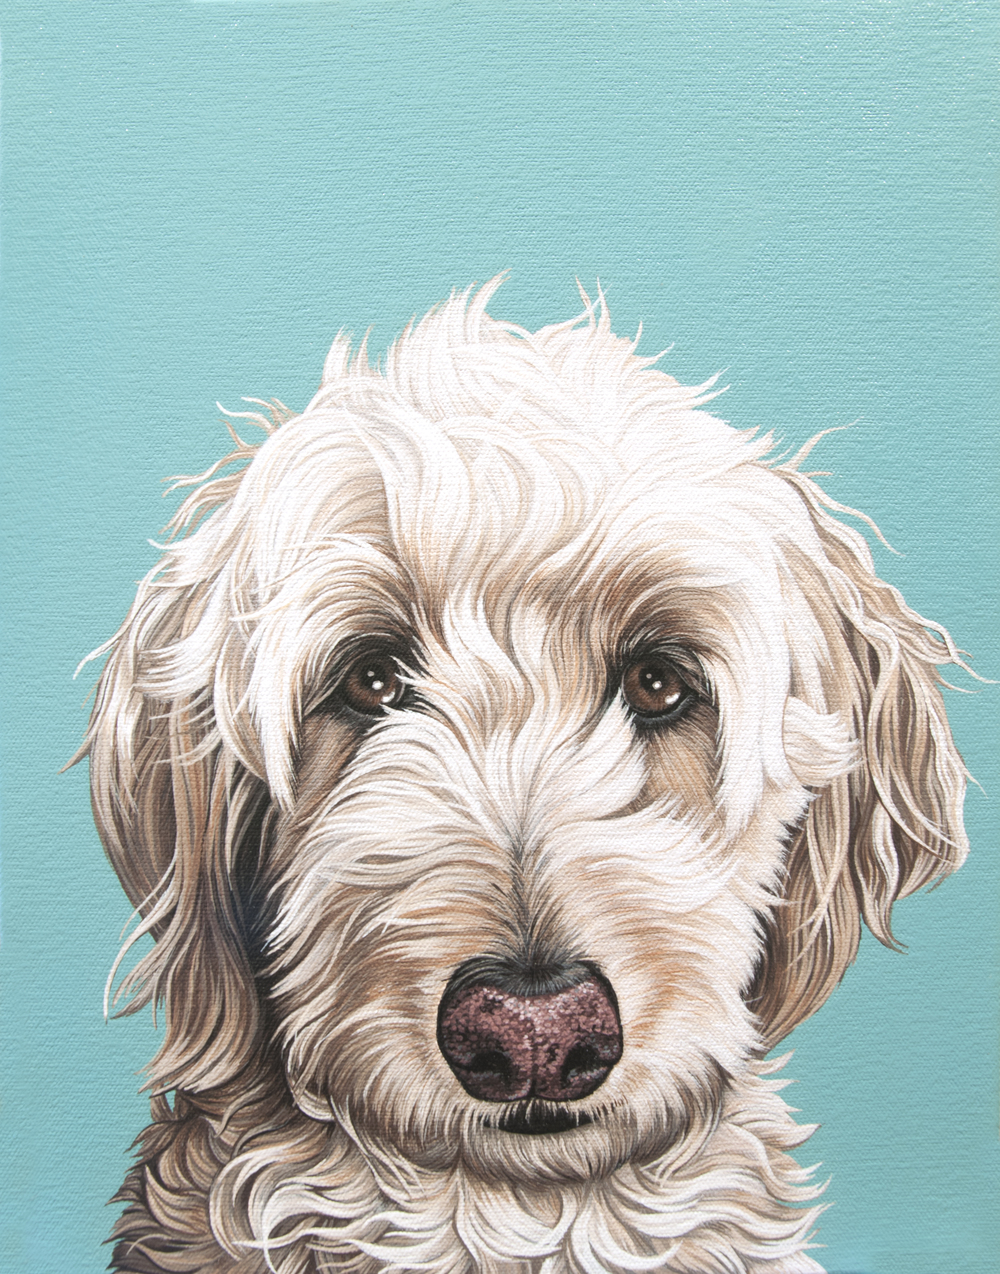 """Maddie"", latex enamel on canvas, 14""x 11"", 2015"